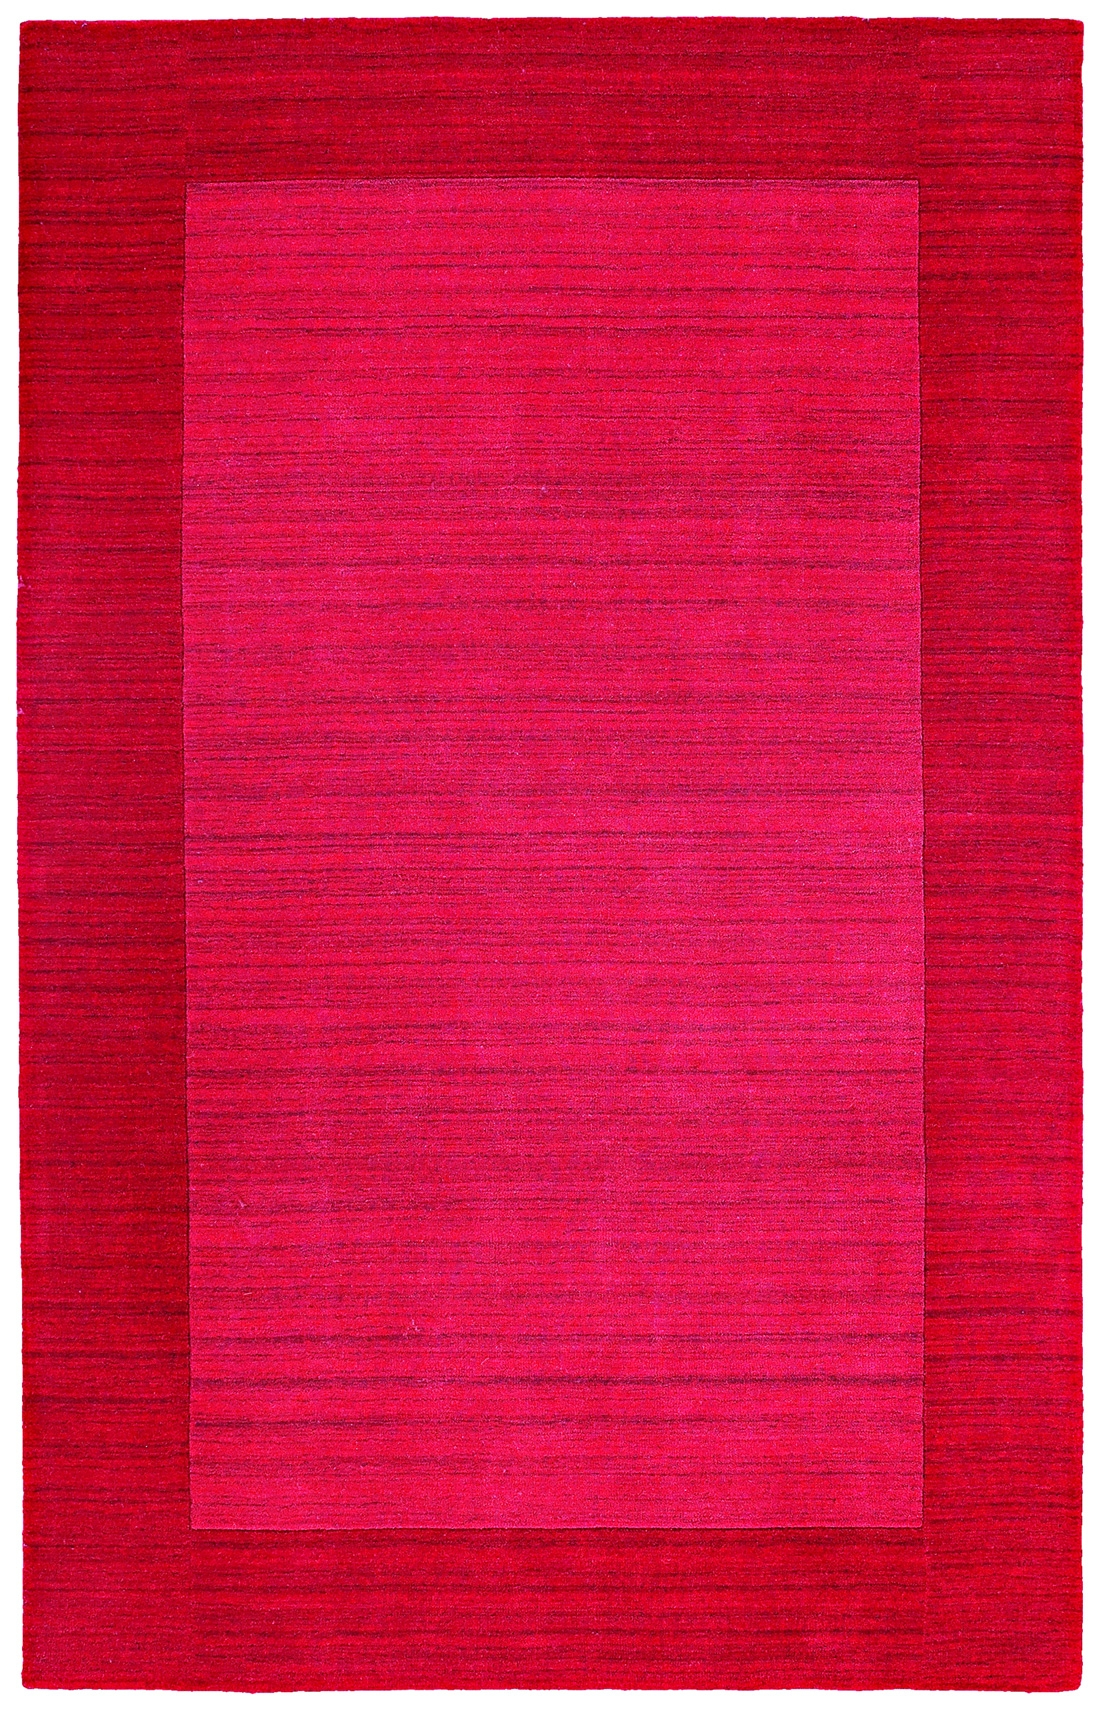 Regency 7000 Regency Watermelon 36 Rug By Kaleen